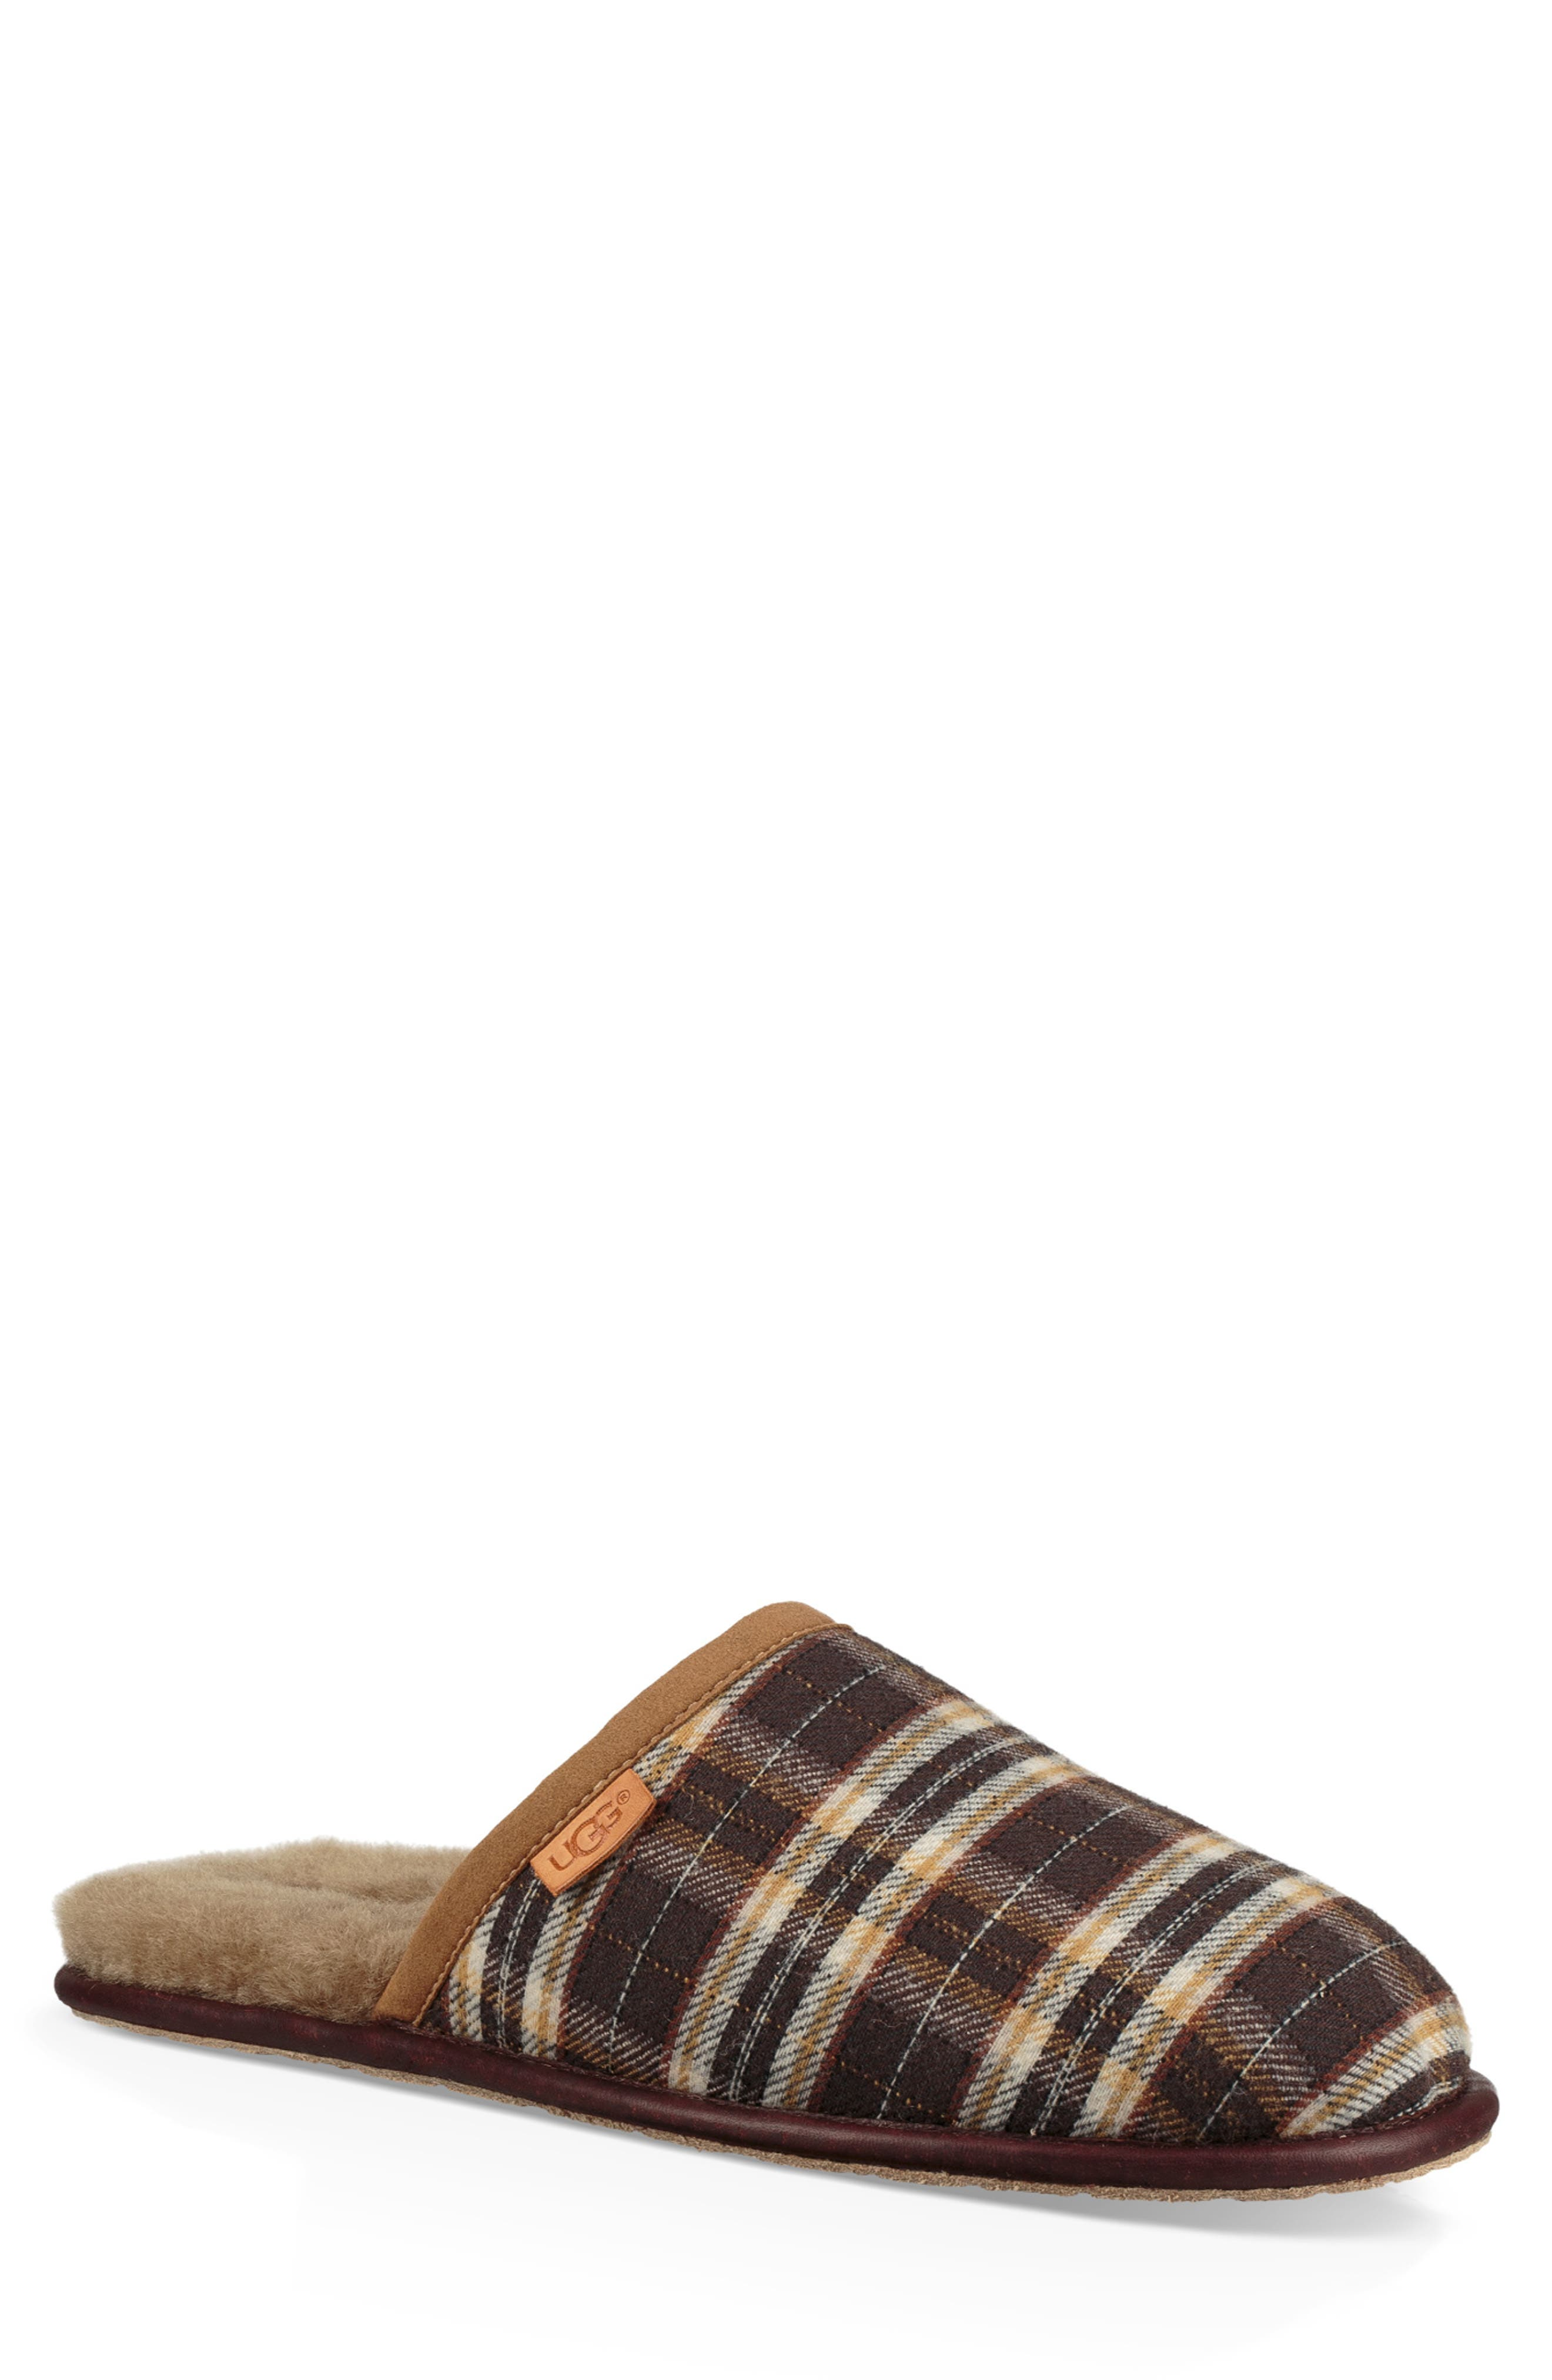 Scuff Slipper,                             Main thumbnail 1, color,                             CHESTNUT